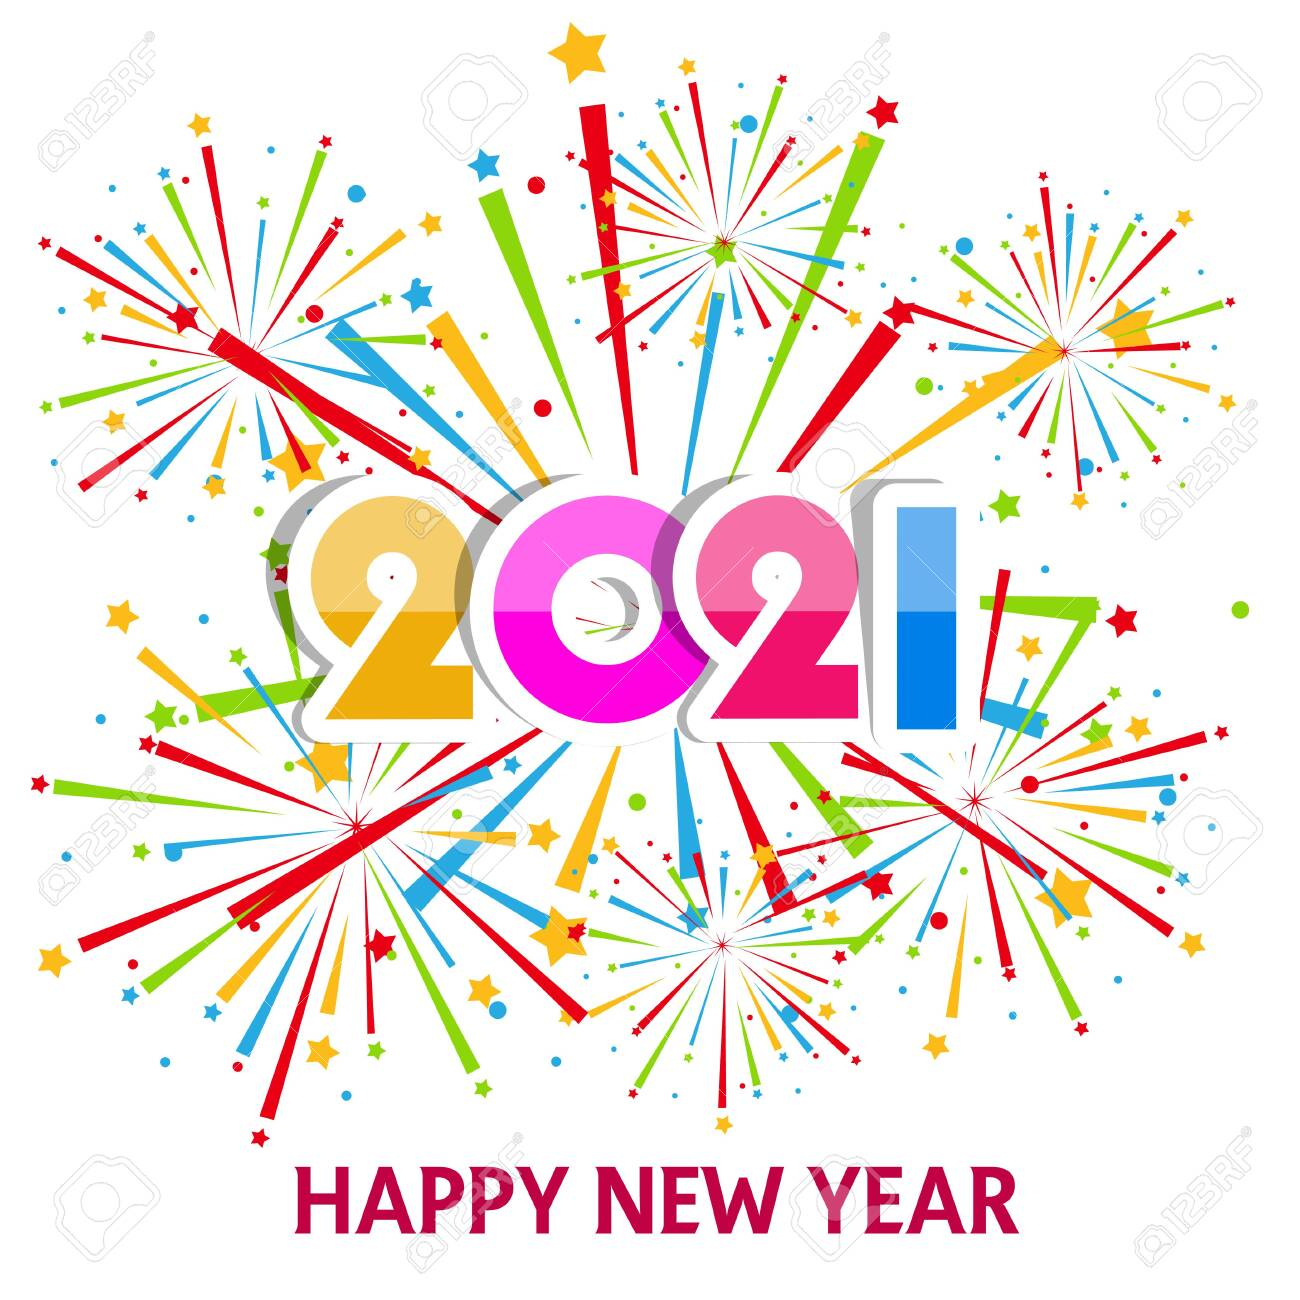 happy new year 2021 with firework background firework display royalty free cliparts vectors and stock illustration image 141533446 happy new year 2021 with firework background firework display